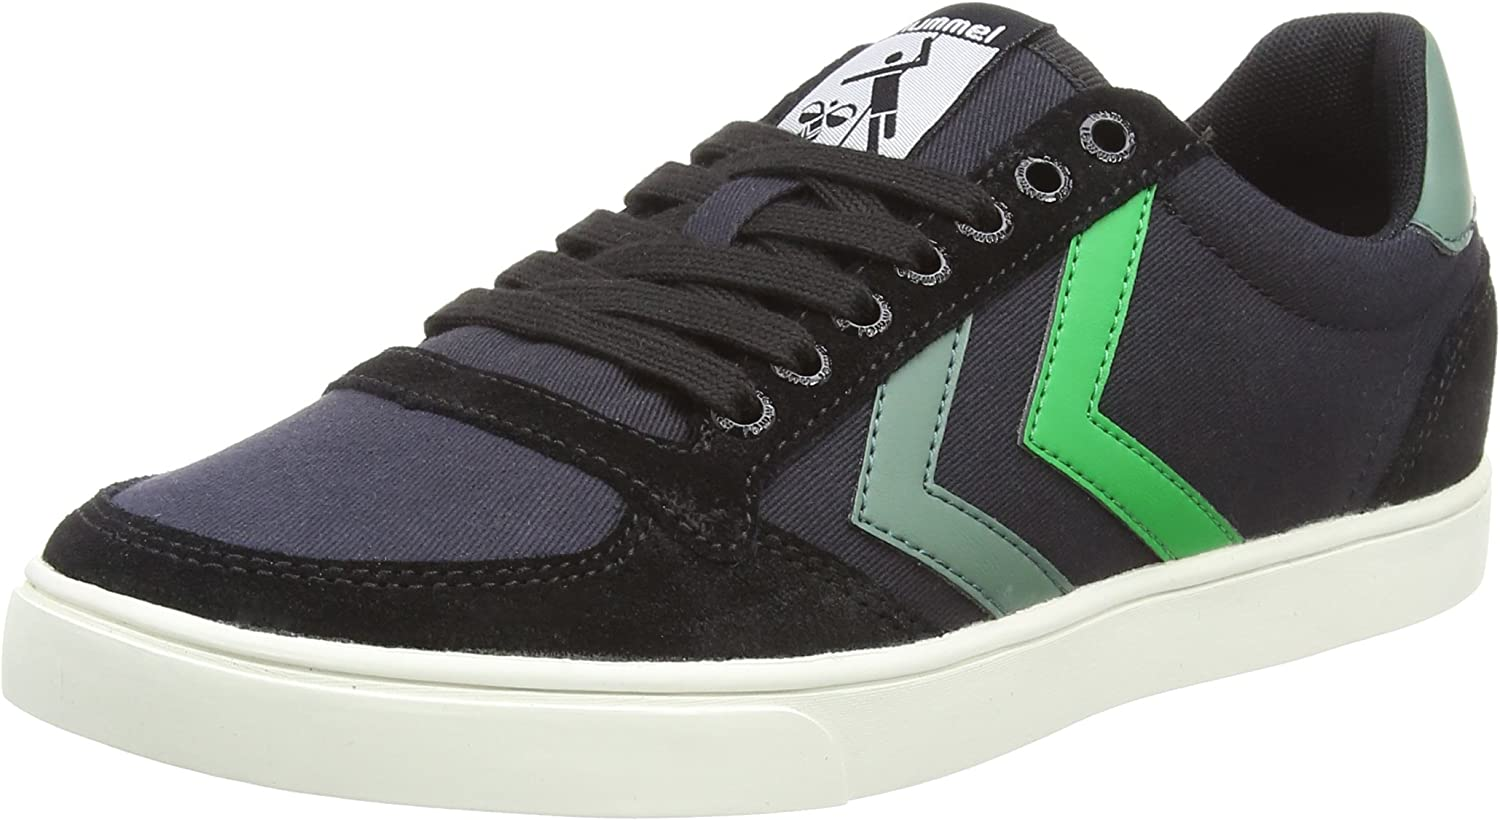 Hummel Unisex Adults' Slimmer Stadil Duo Canvas Low Trainers